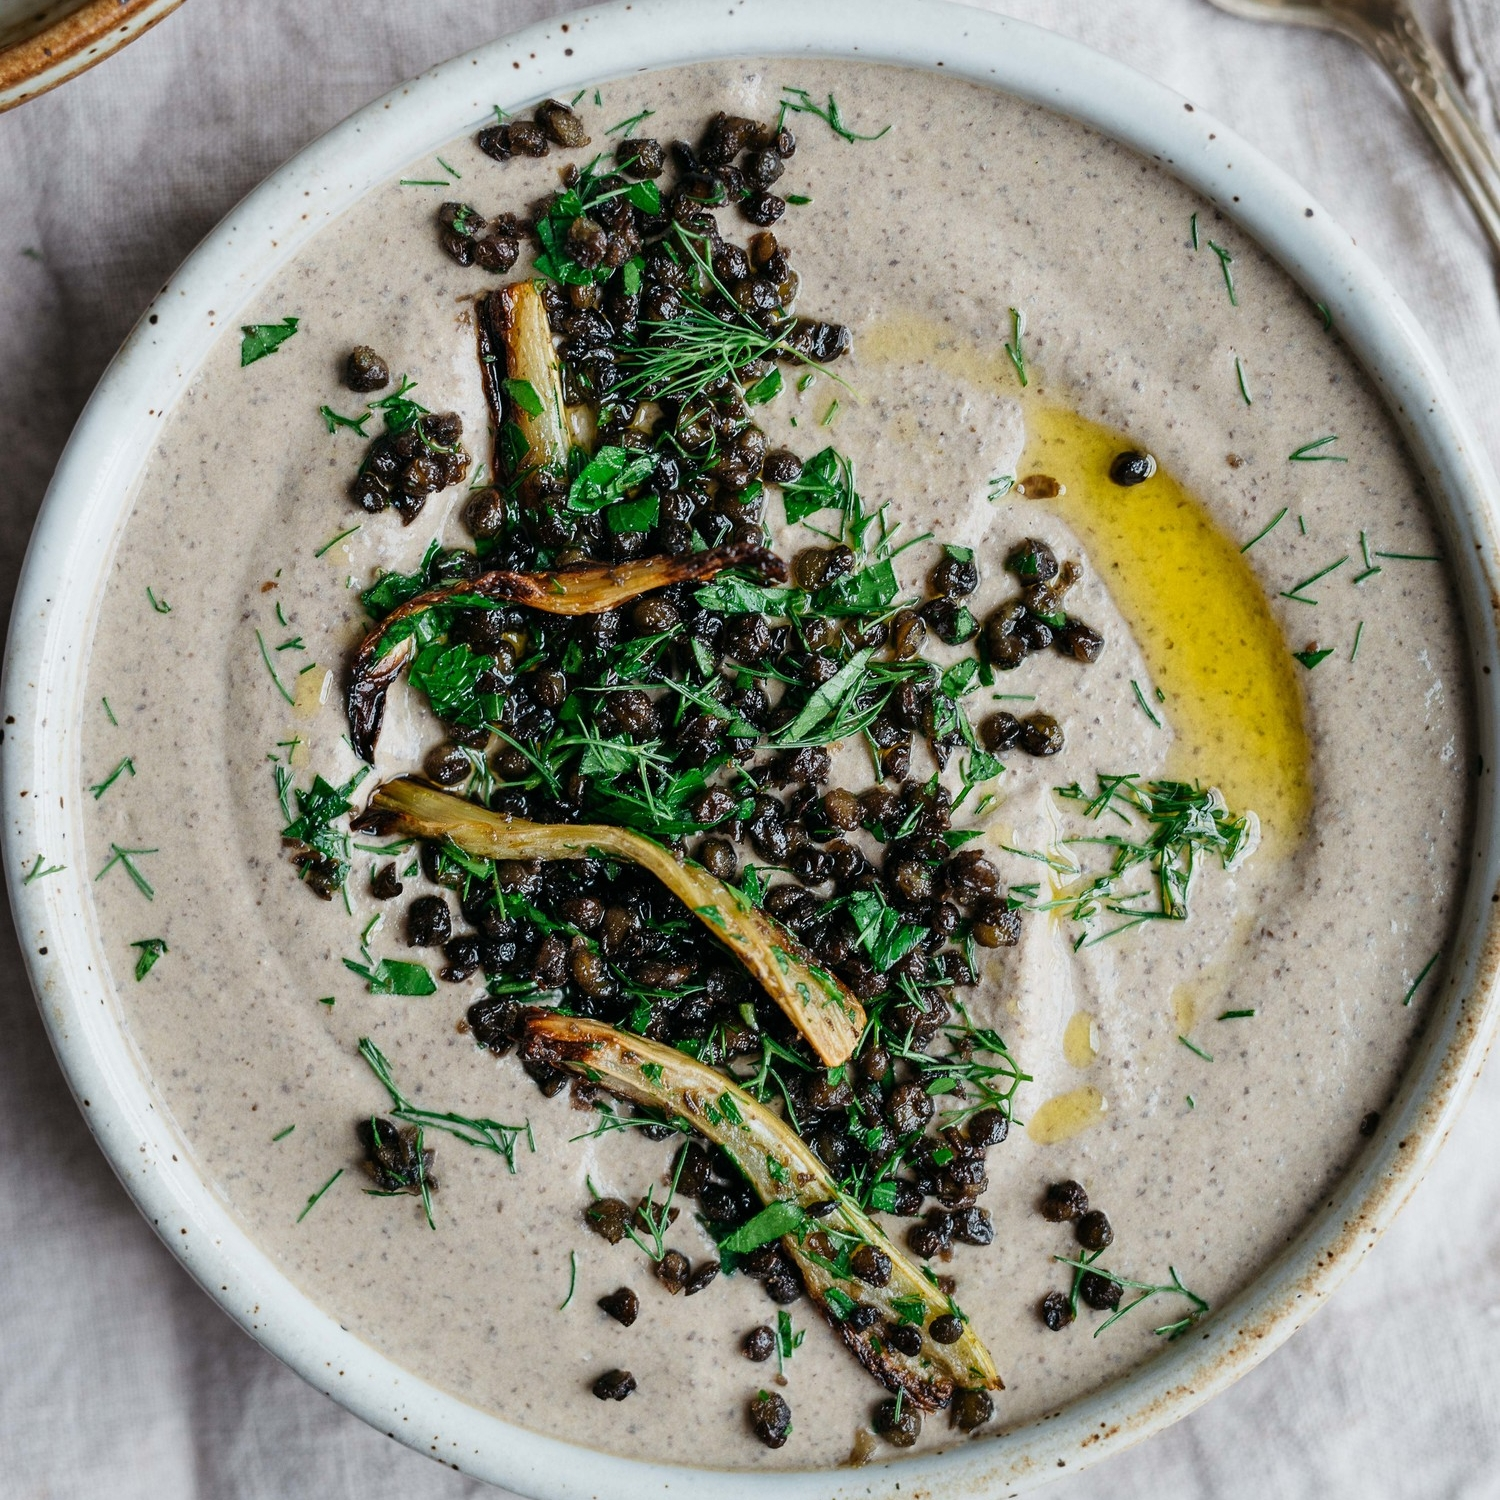 black beluga lentil hummus w/ roasted garlic & fennel